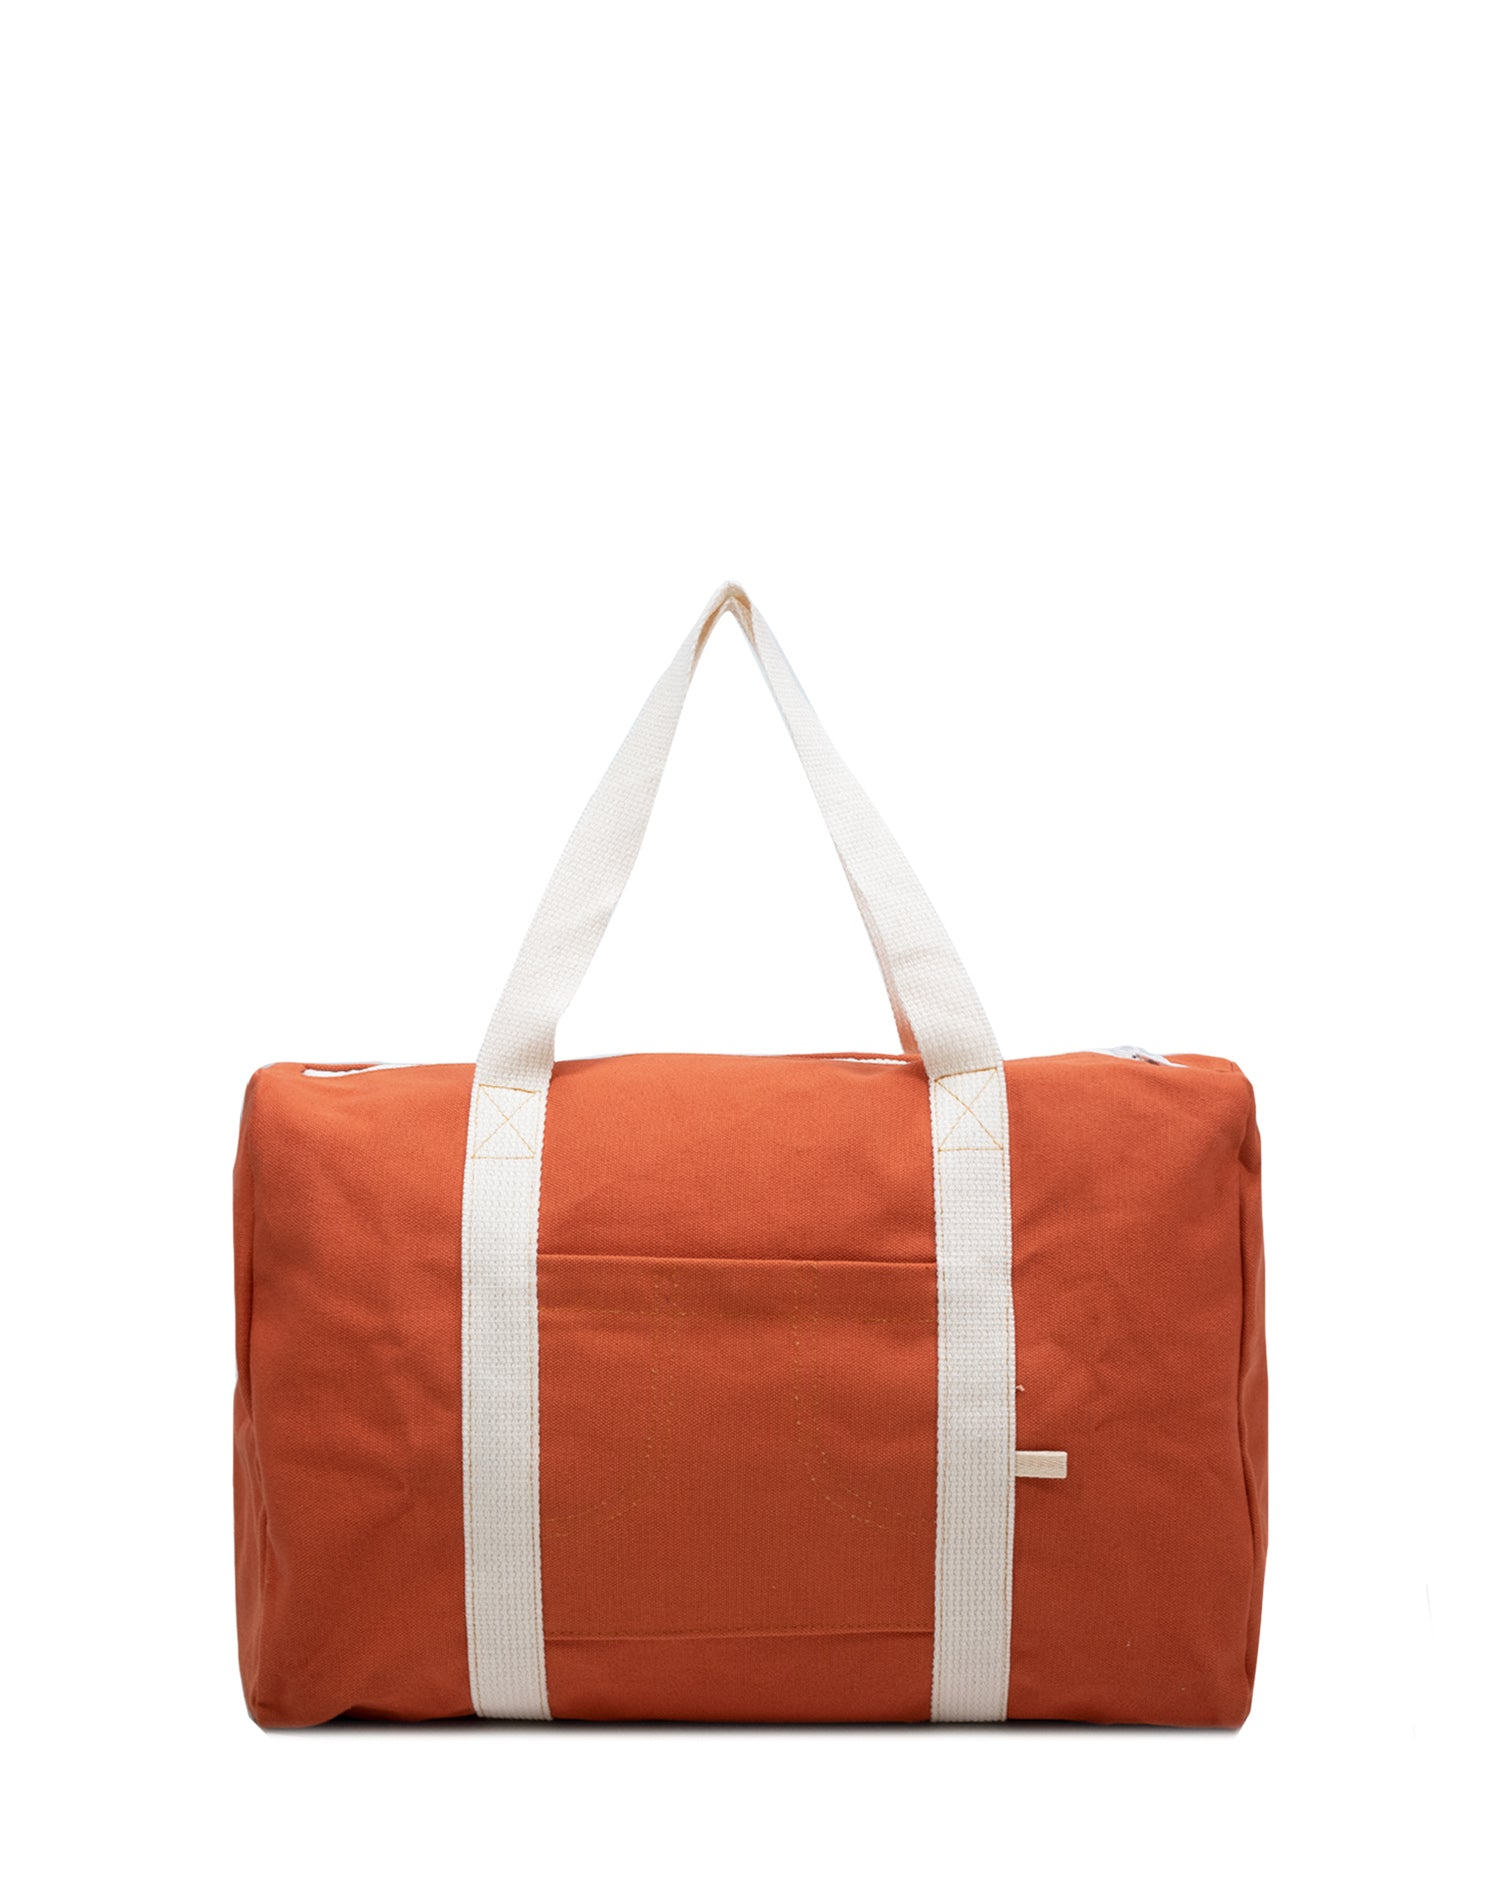 Tangerine Canvas Street Duffel Bag.柑橘系帆布行李袋